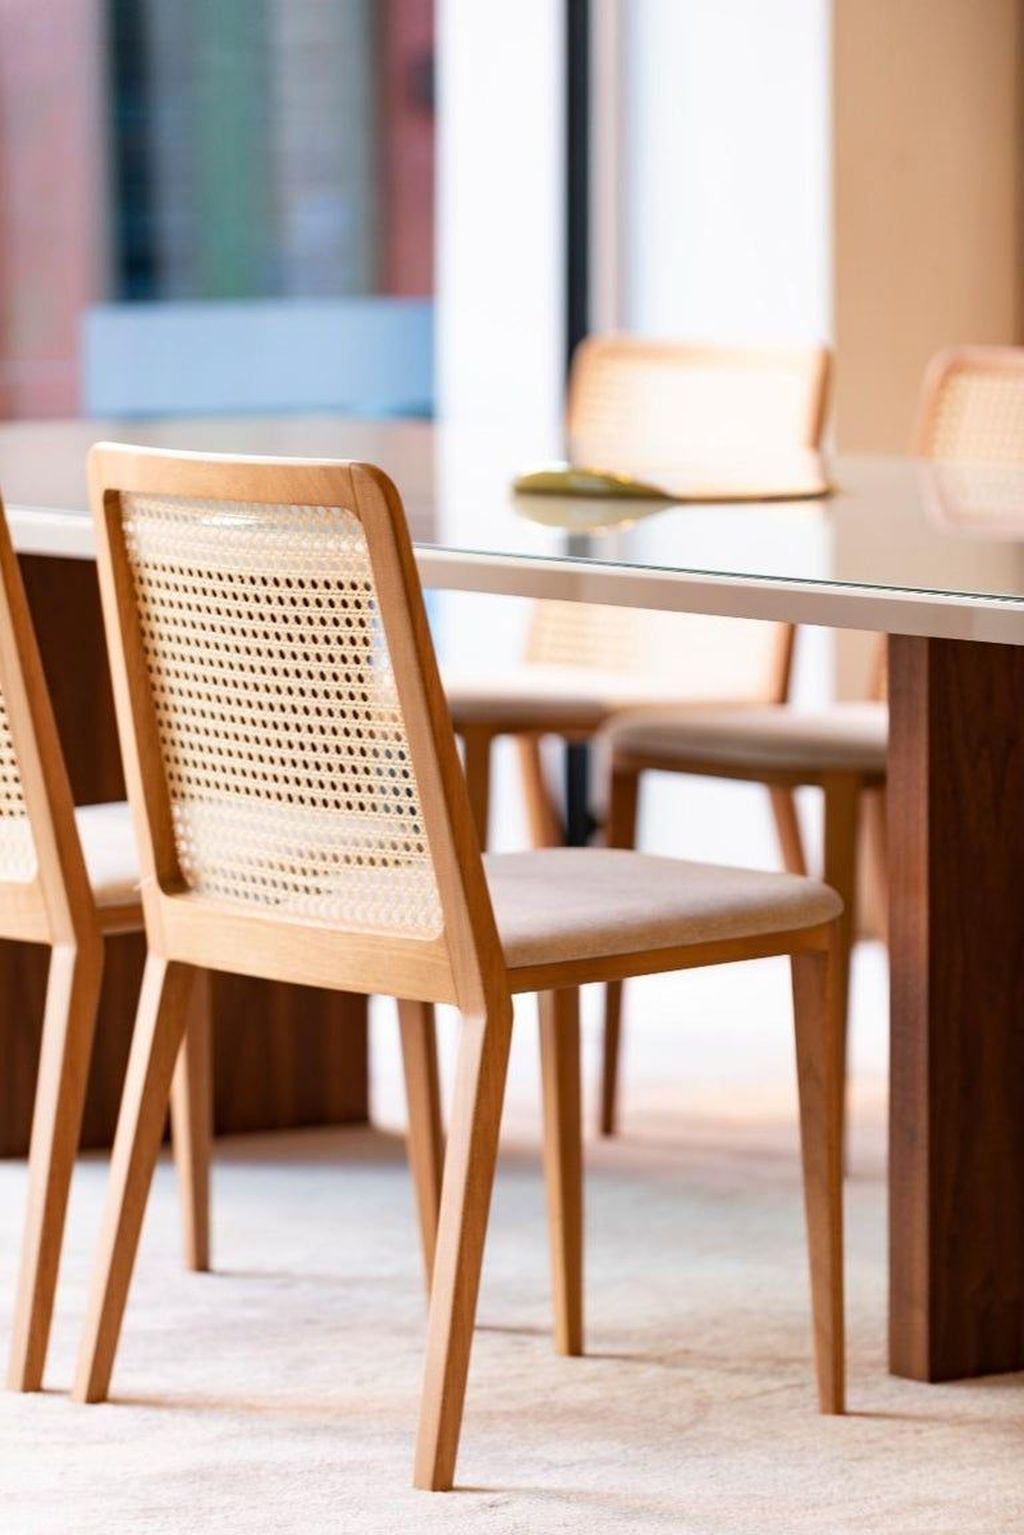 Admirable Dining Chair Design Ideas You Must Have 03